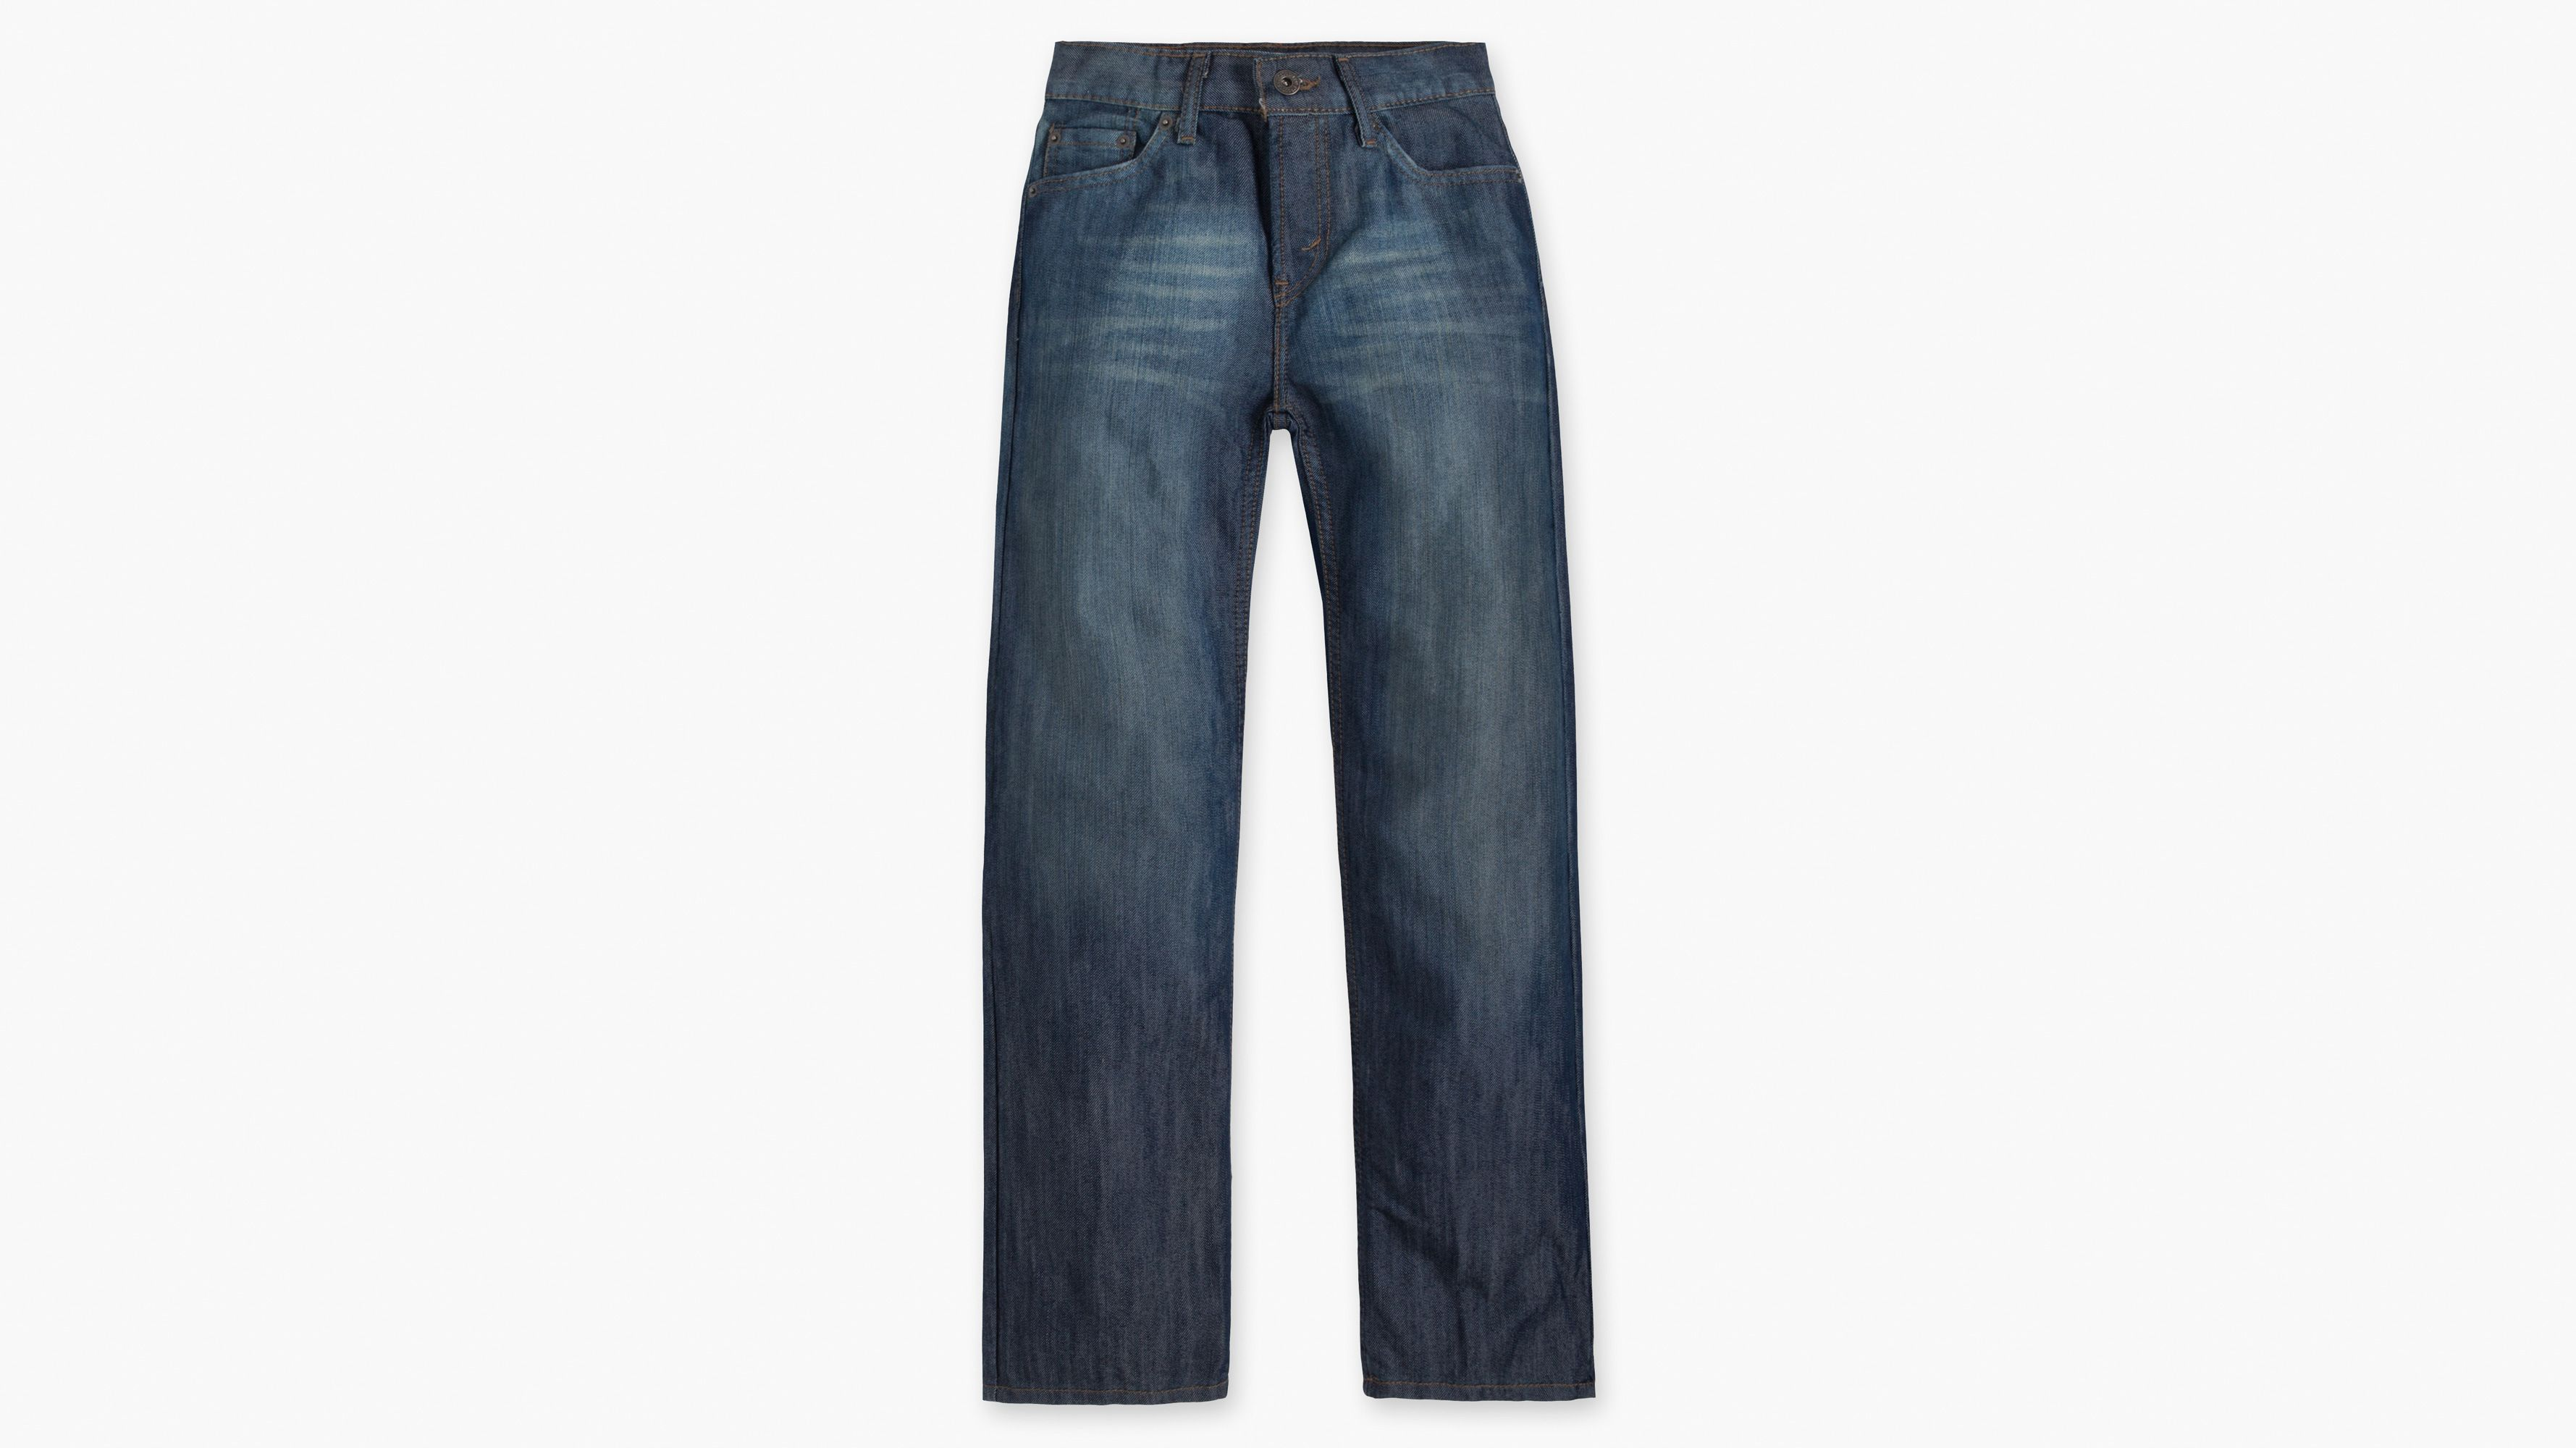 Boys (8-20) 514™ Straight Fit Jeans - Blurred